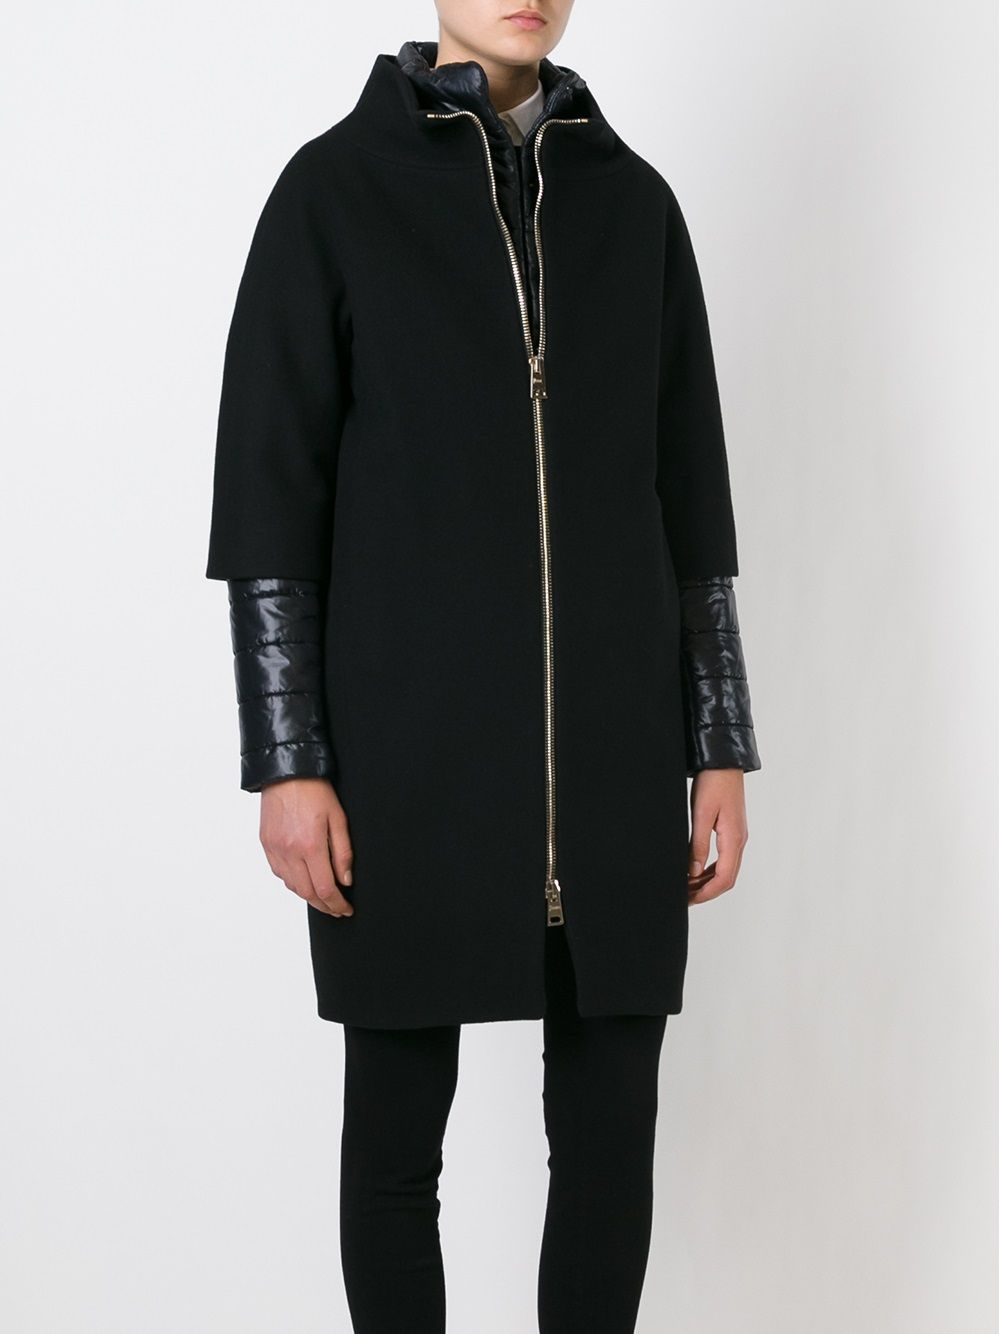 Black wool blend coat with padded sleeves HERNO |  | CA0040D-M01-396019300